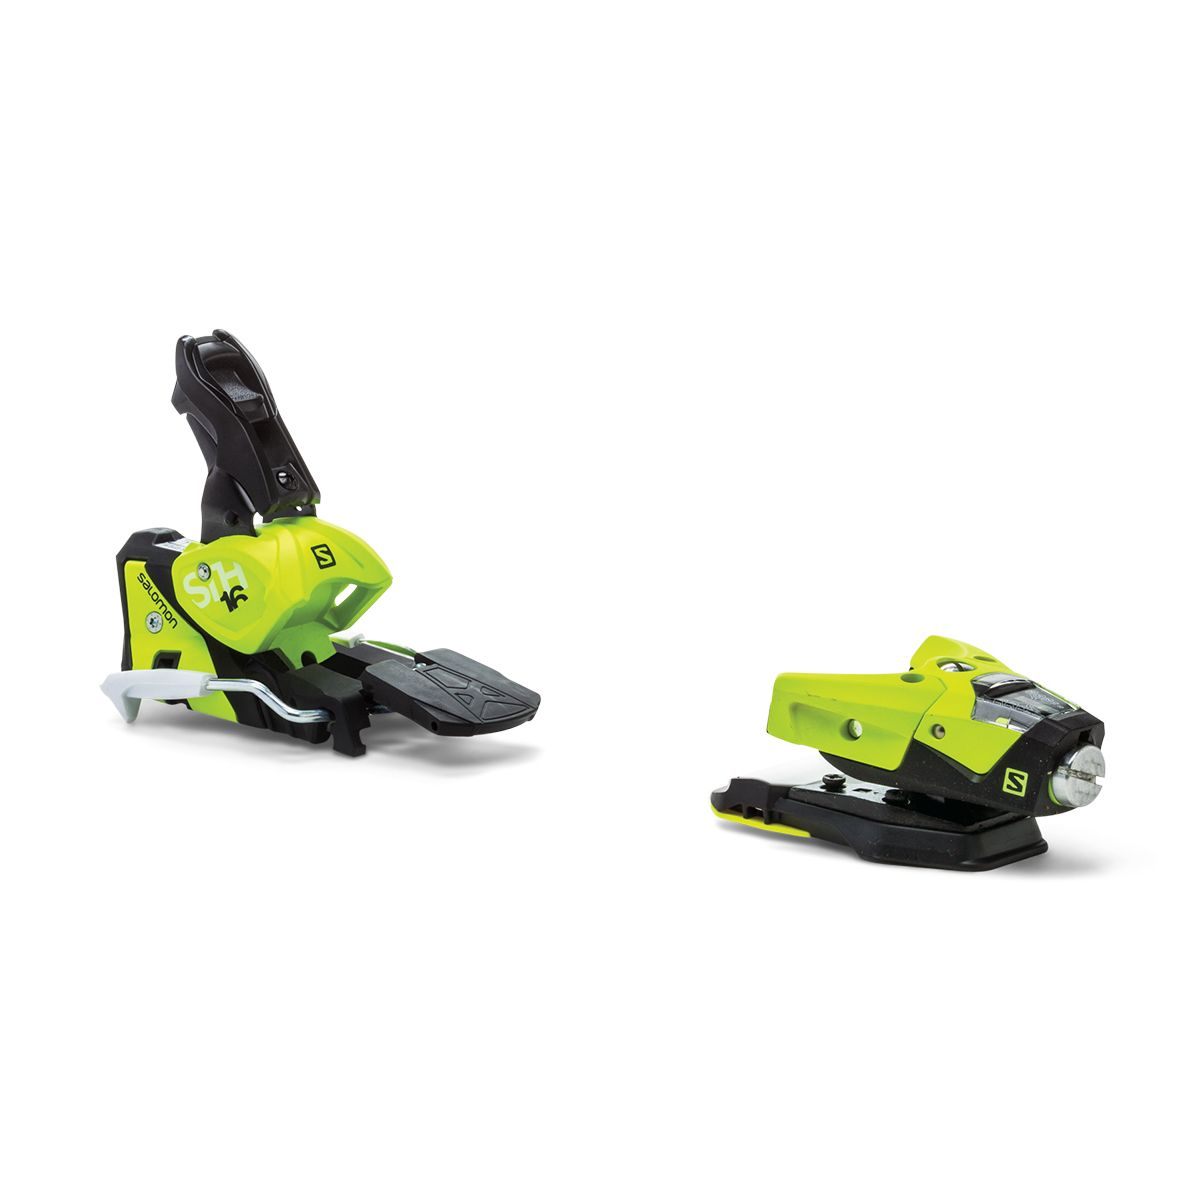 A Review Of The Salomon STH2 WTR 16 Ski Binding. Learn